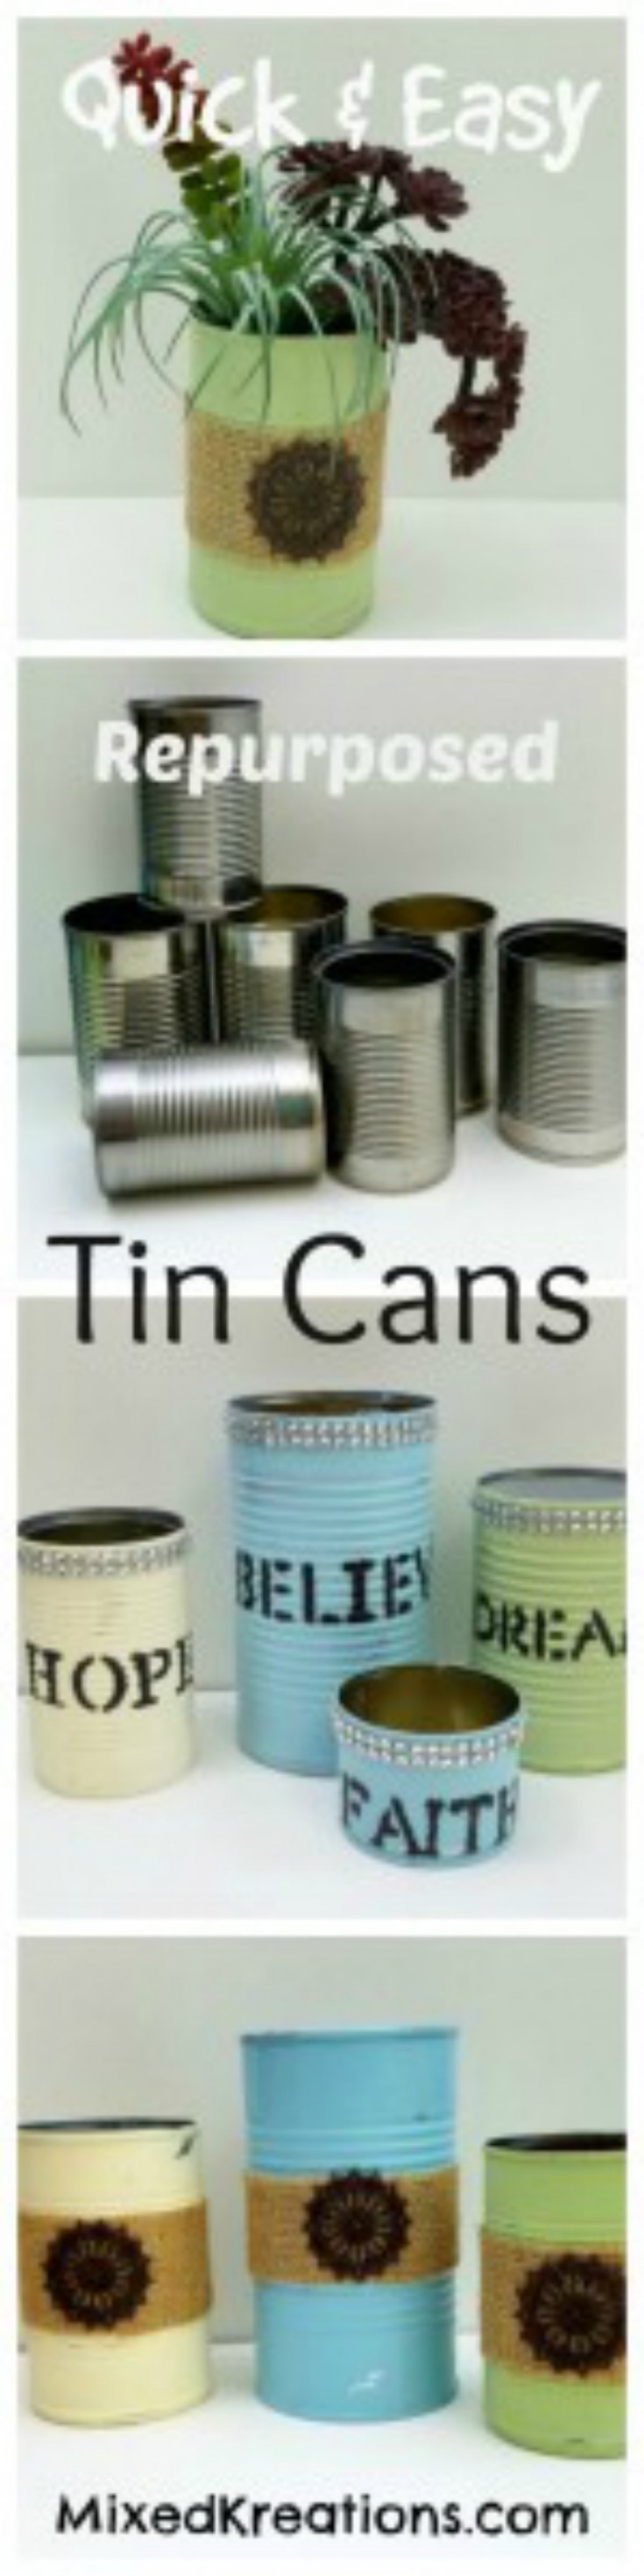 repurposed tin cans